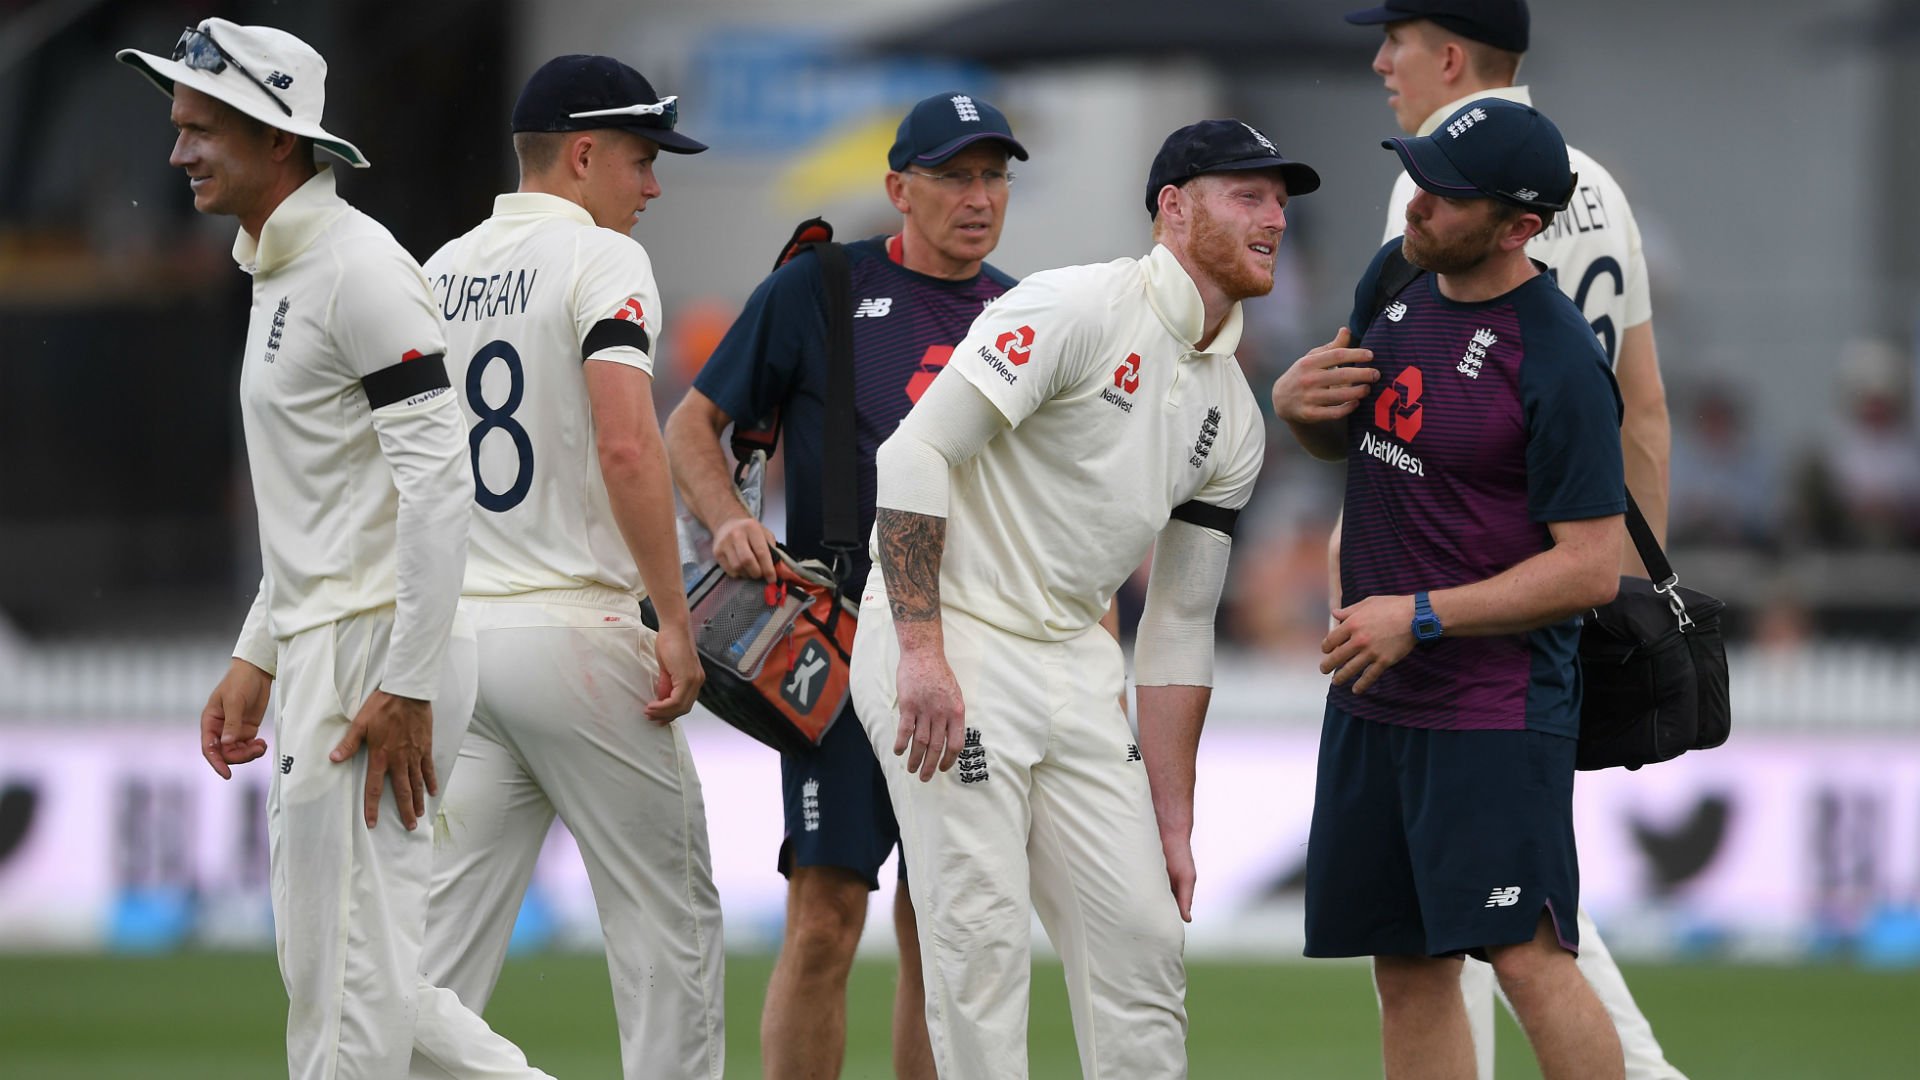 Woakes fears losing bowling of 'world class' Stokes